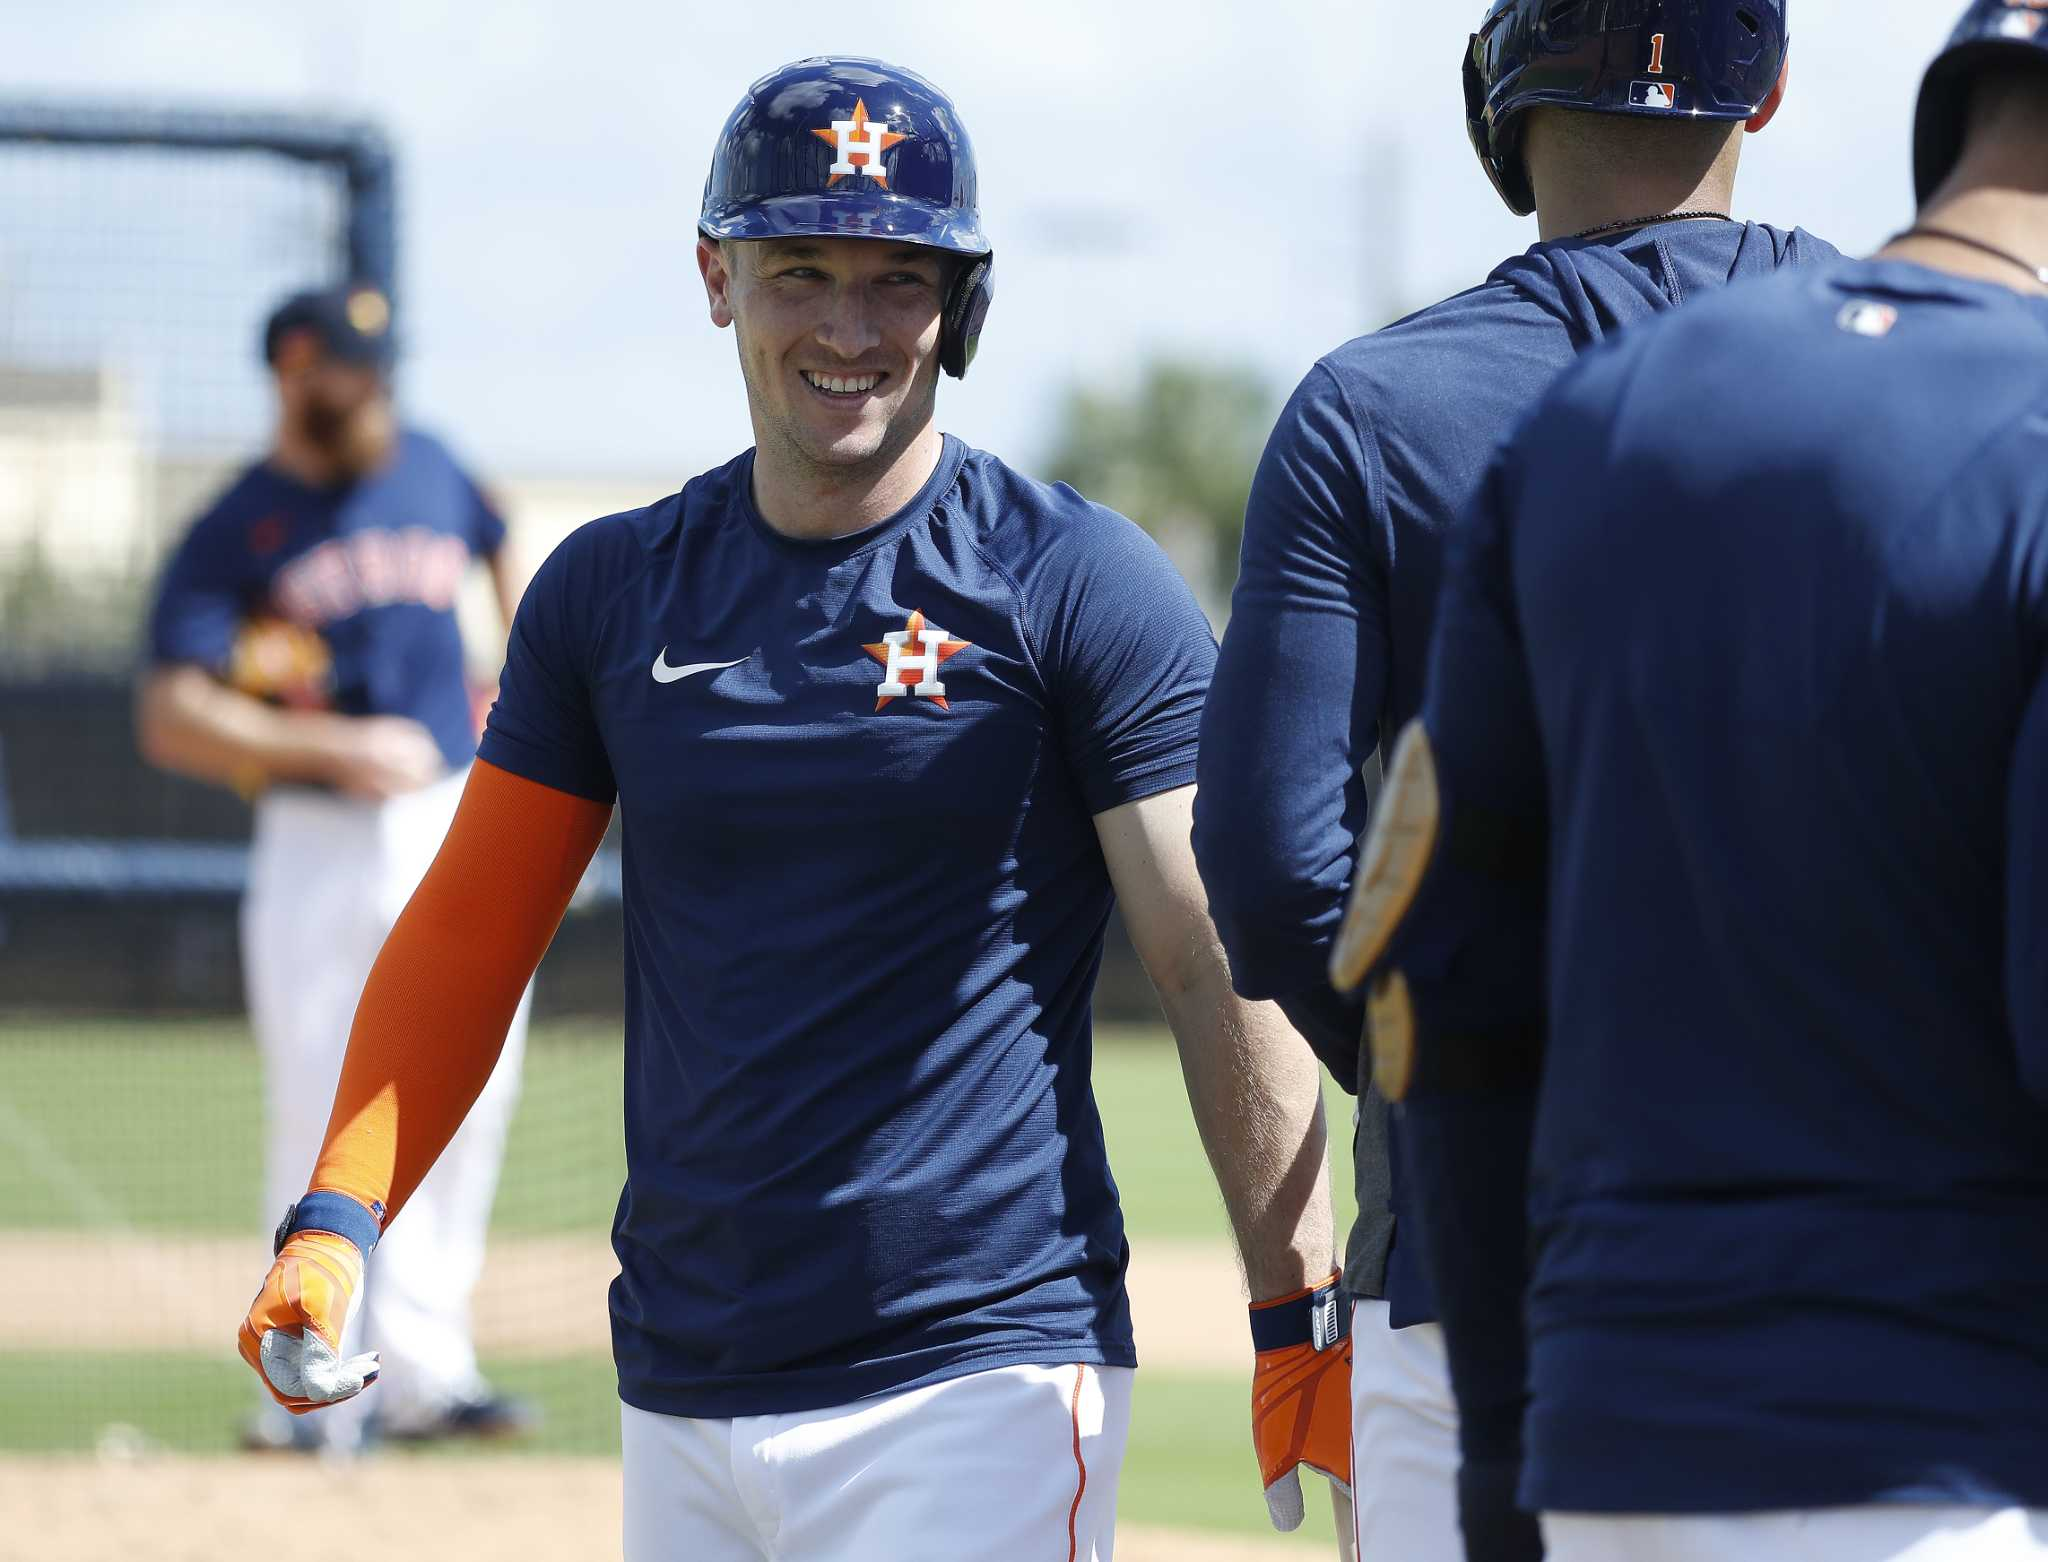 Roundup from Tuesday at Astros spring training